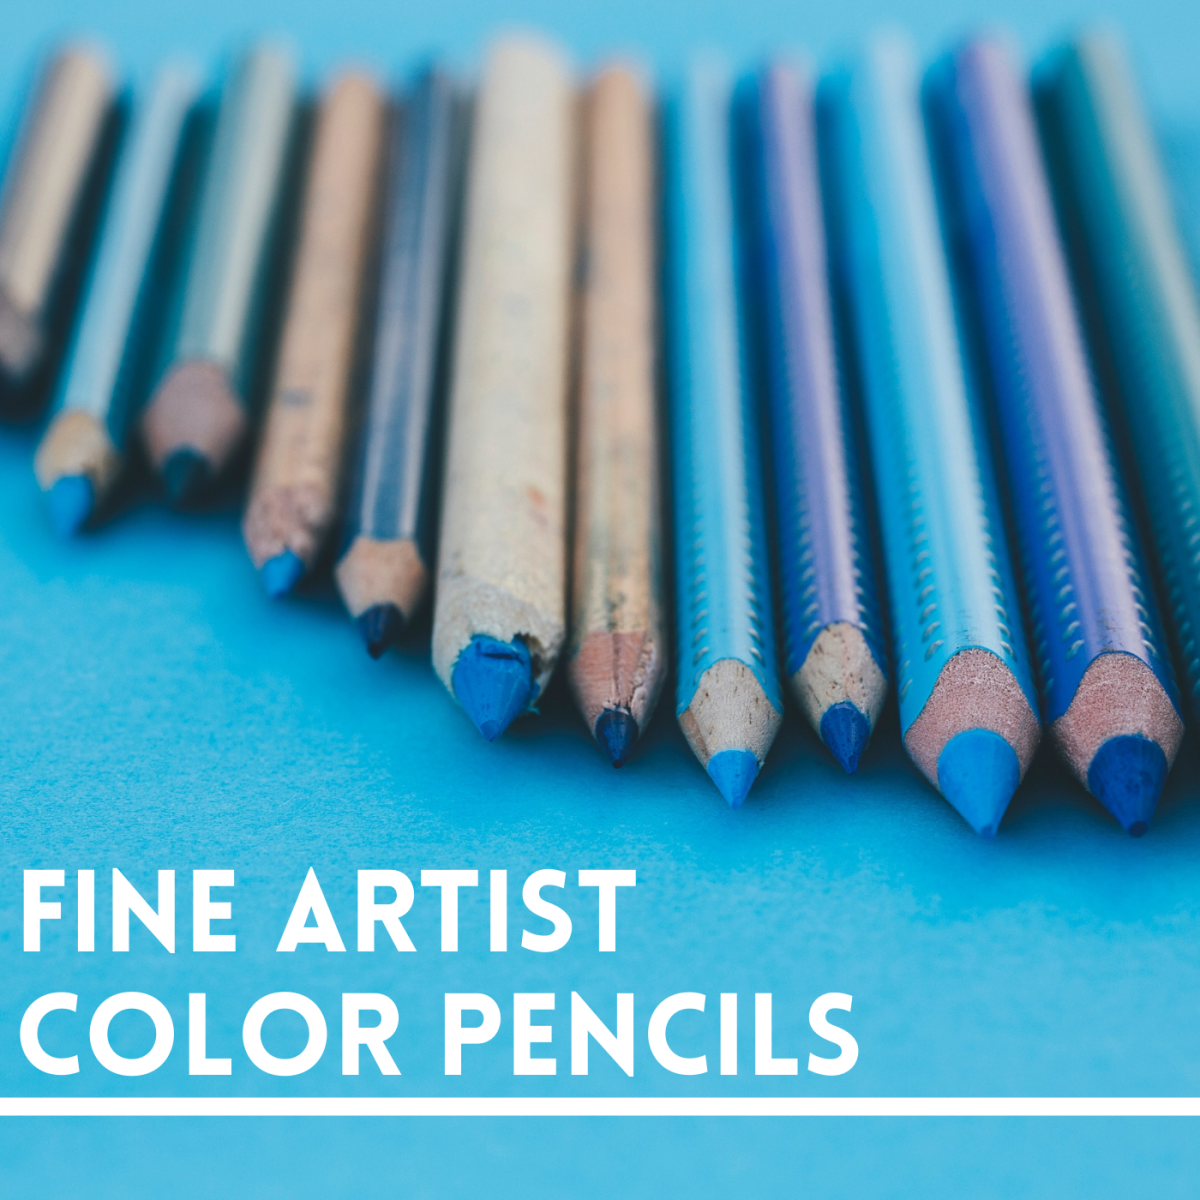 Fine Artist Color Pencils: How Do They Differ?